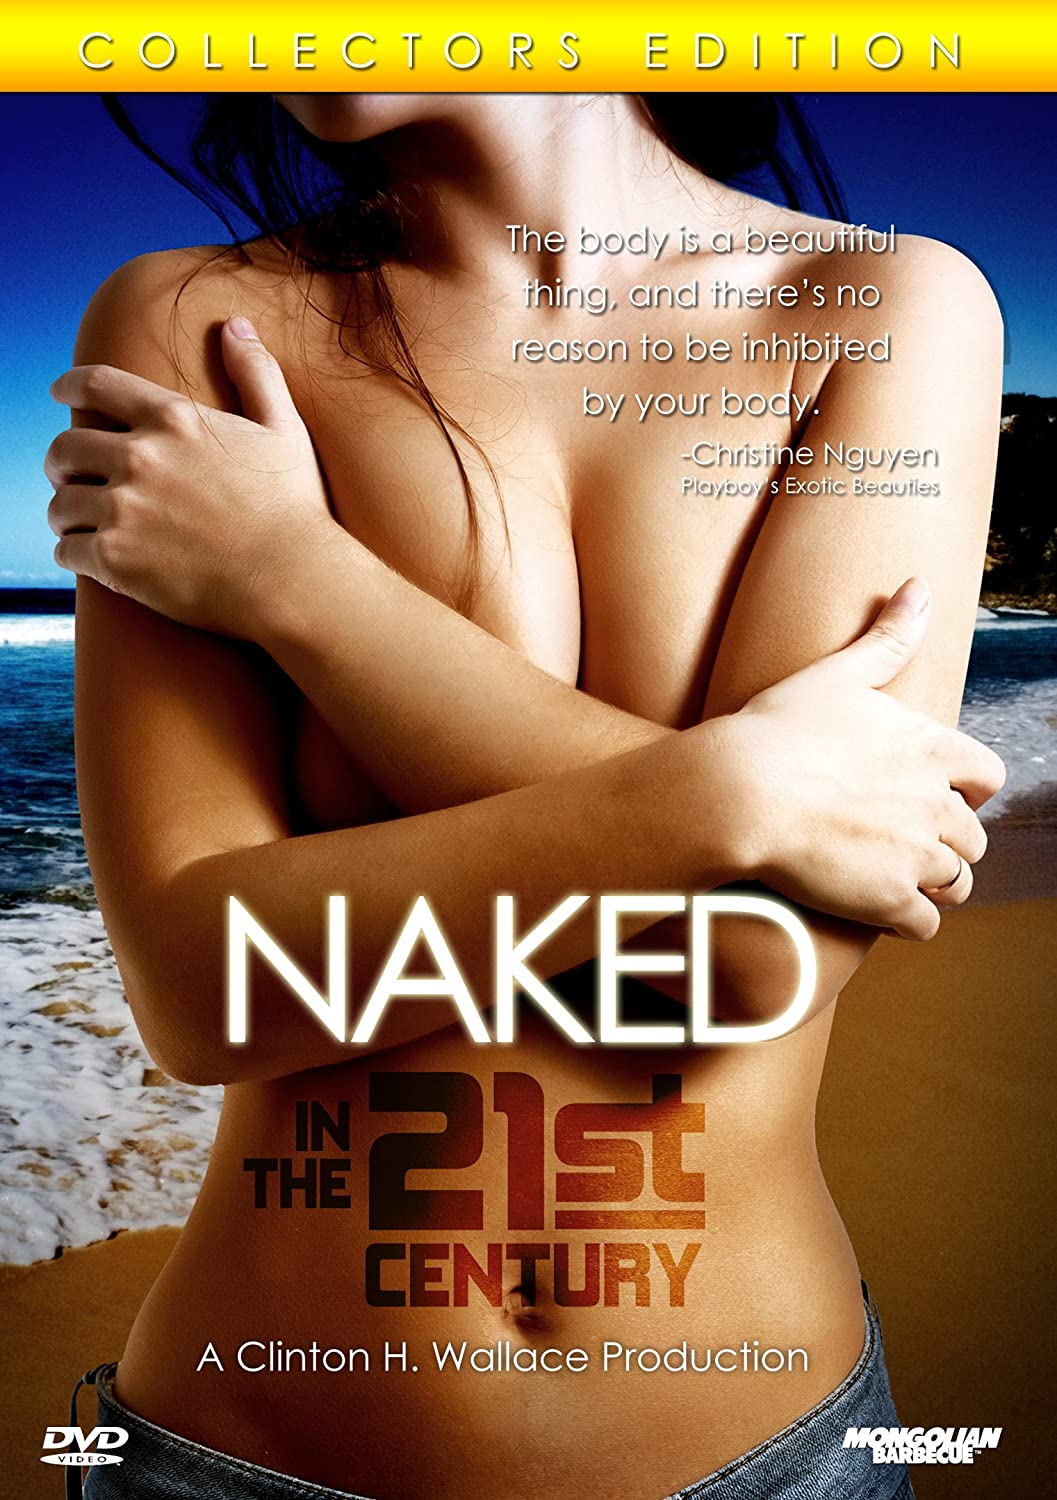 Amazon.com: Naked in the 21st Century: Nudist Edition: Athena Demos, Lena  Yada, Christine Nguyen, T.L. Young: Movies & TV